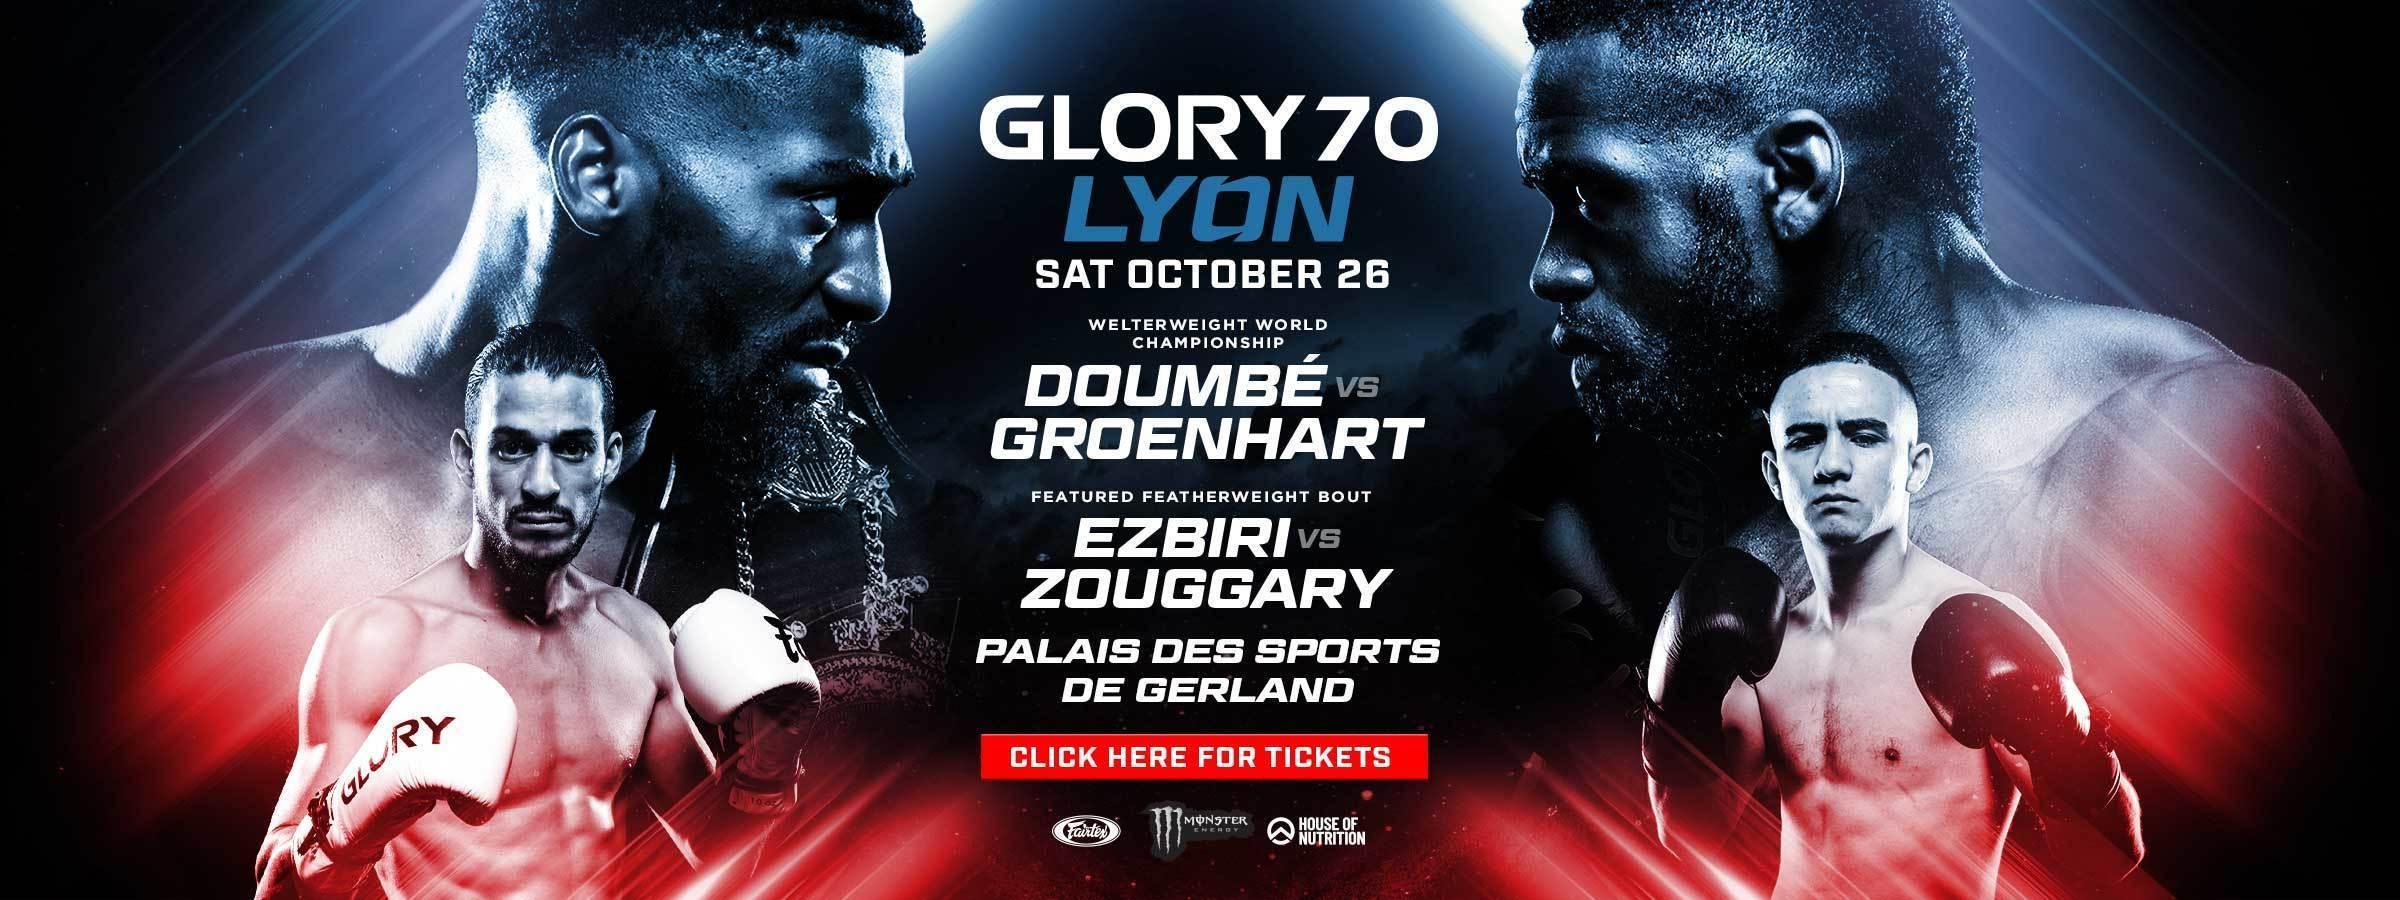 GLORY 70 Buy Tickets